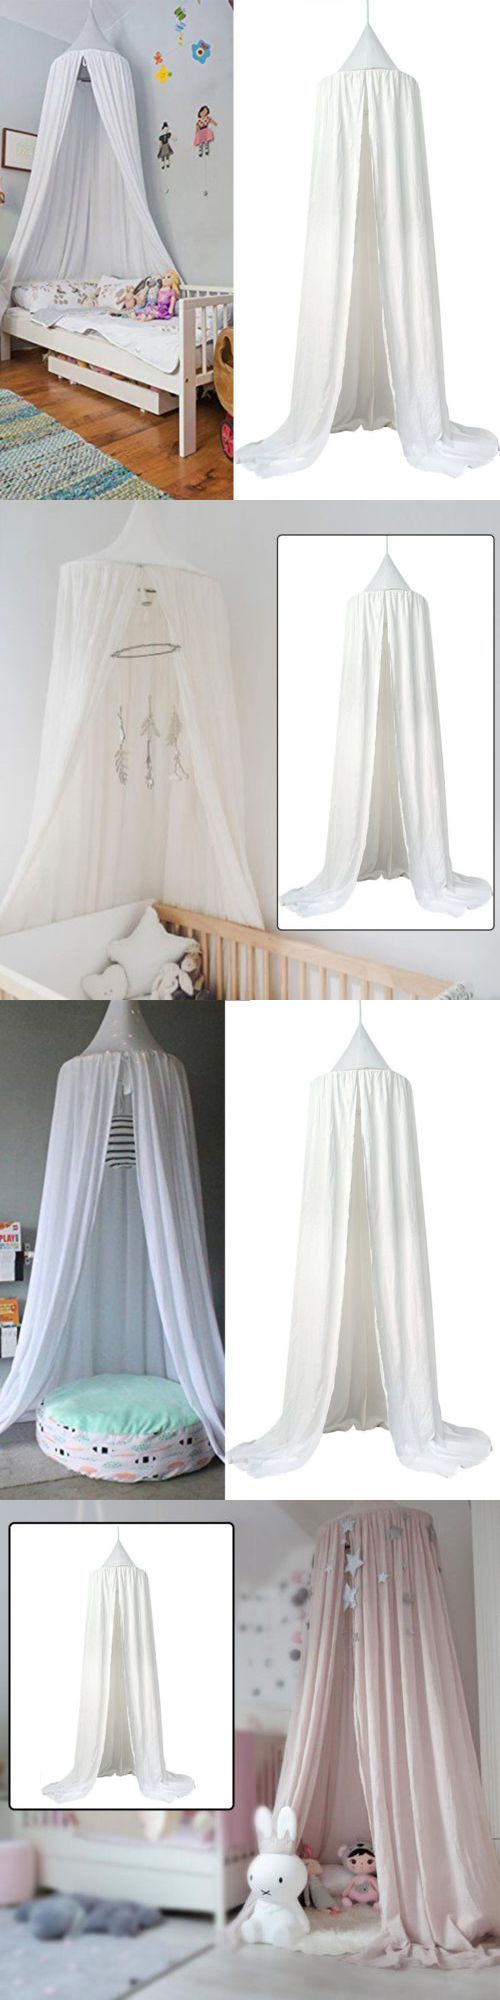 Canopies and Netting 48090: Kids Bedding Round Dome Bed Canopy Cotton Linen Mosquito Net Curtain Room White -> BUY IT NOW ONLY: $31.56 on eBay!